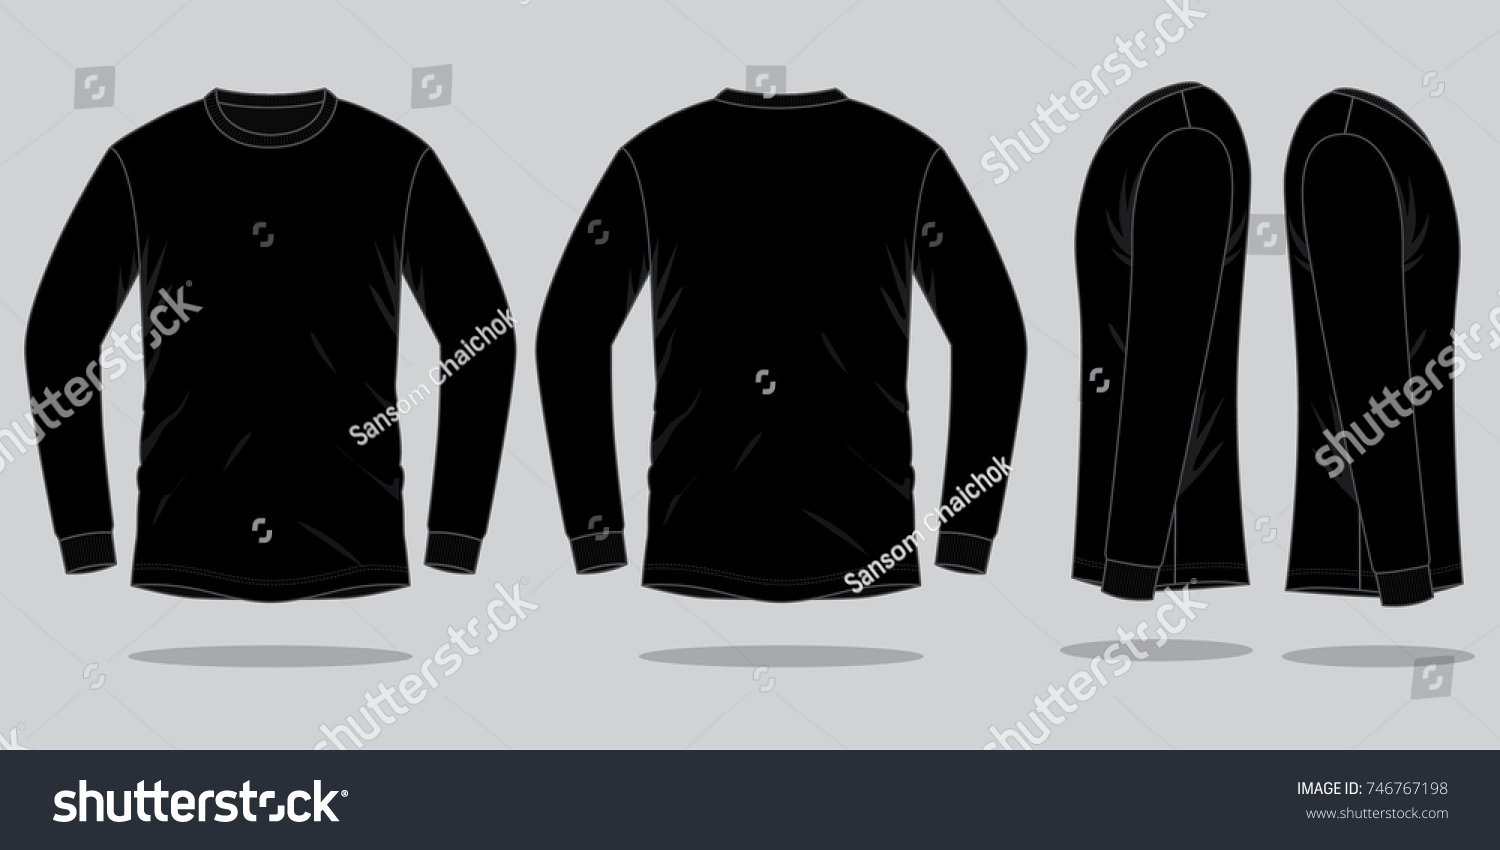 Black Long Sleeve T Shirt Template Stock Vector Royalty Free